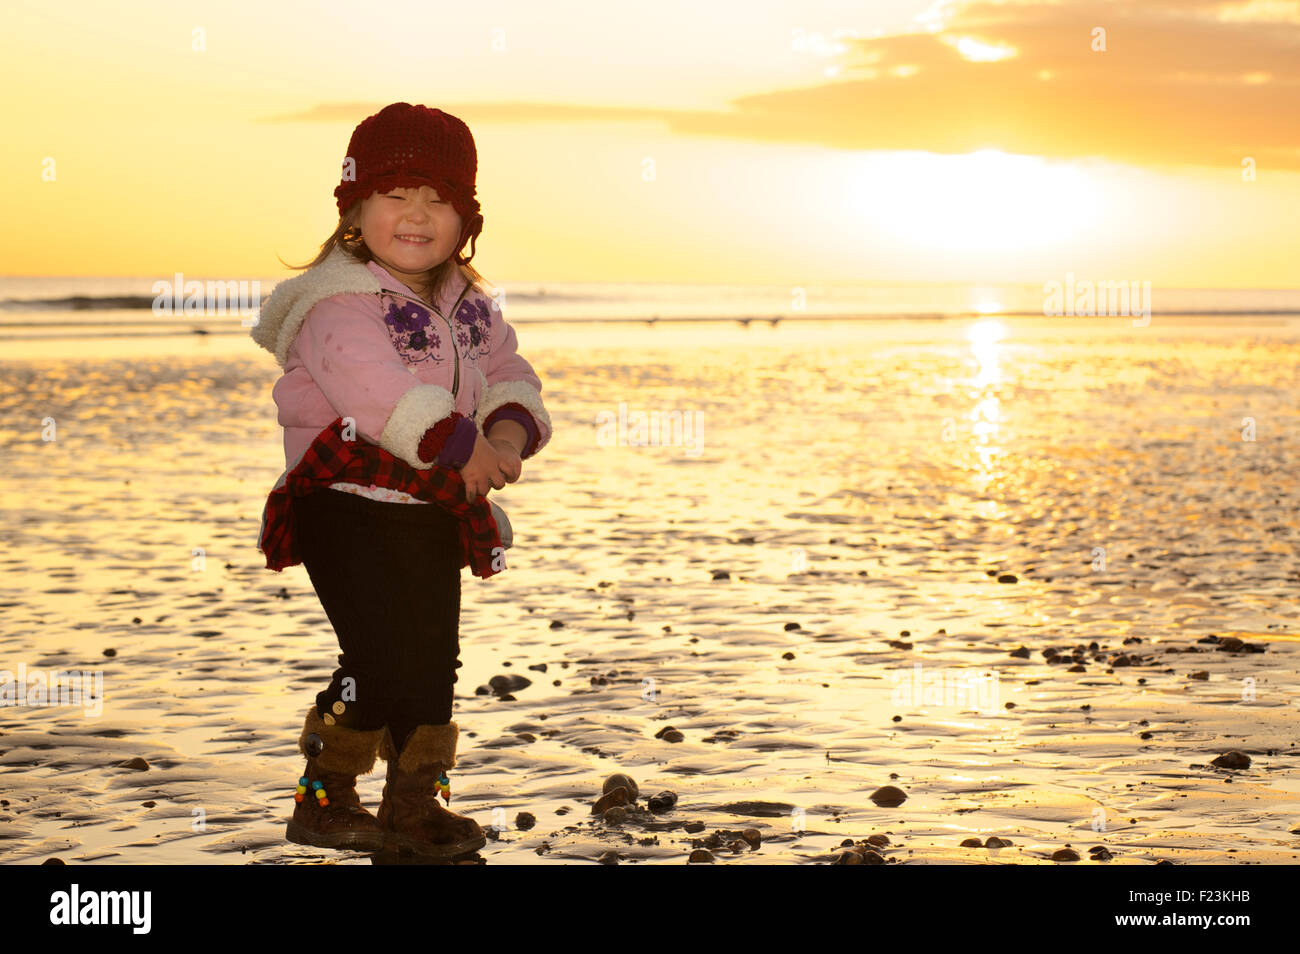 Toddler on the beach in the sand at low tide. MODEL RELEASED - Stock Image